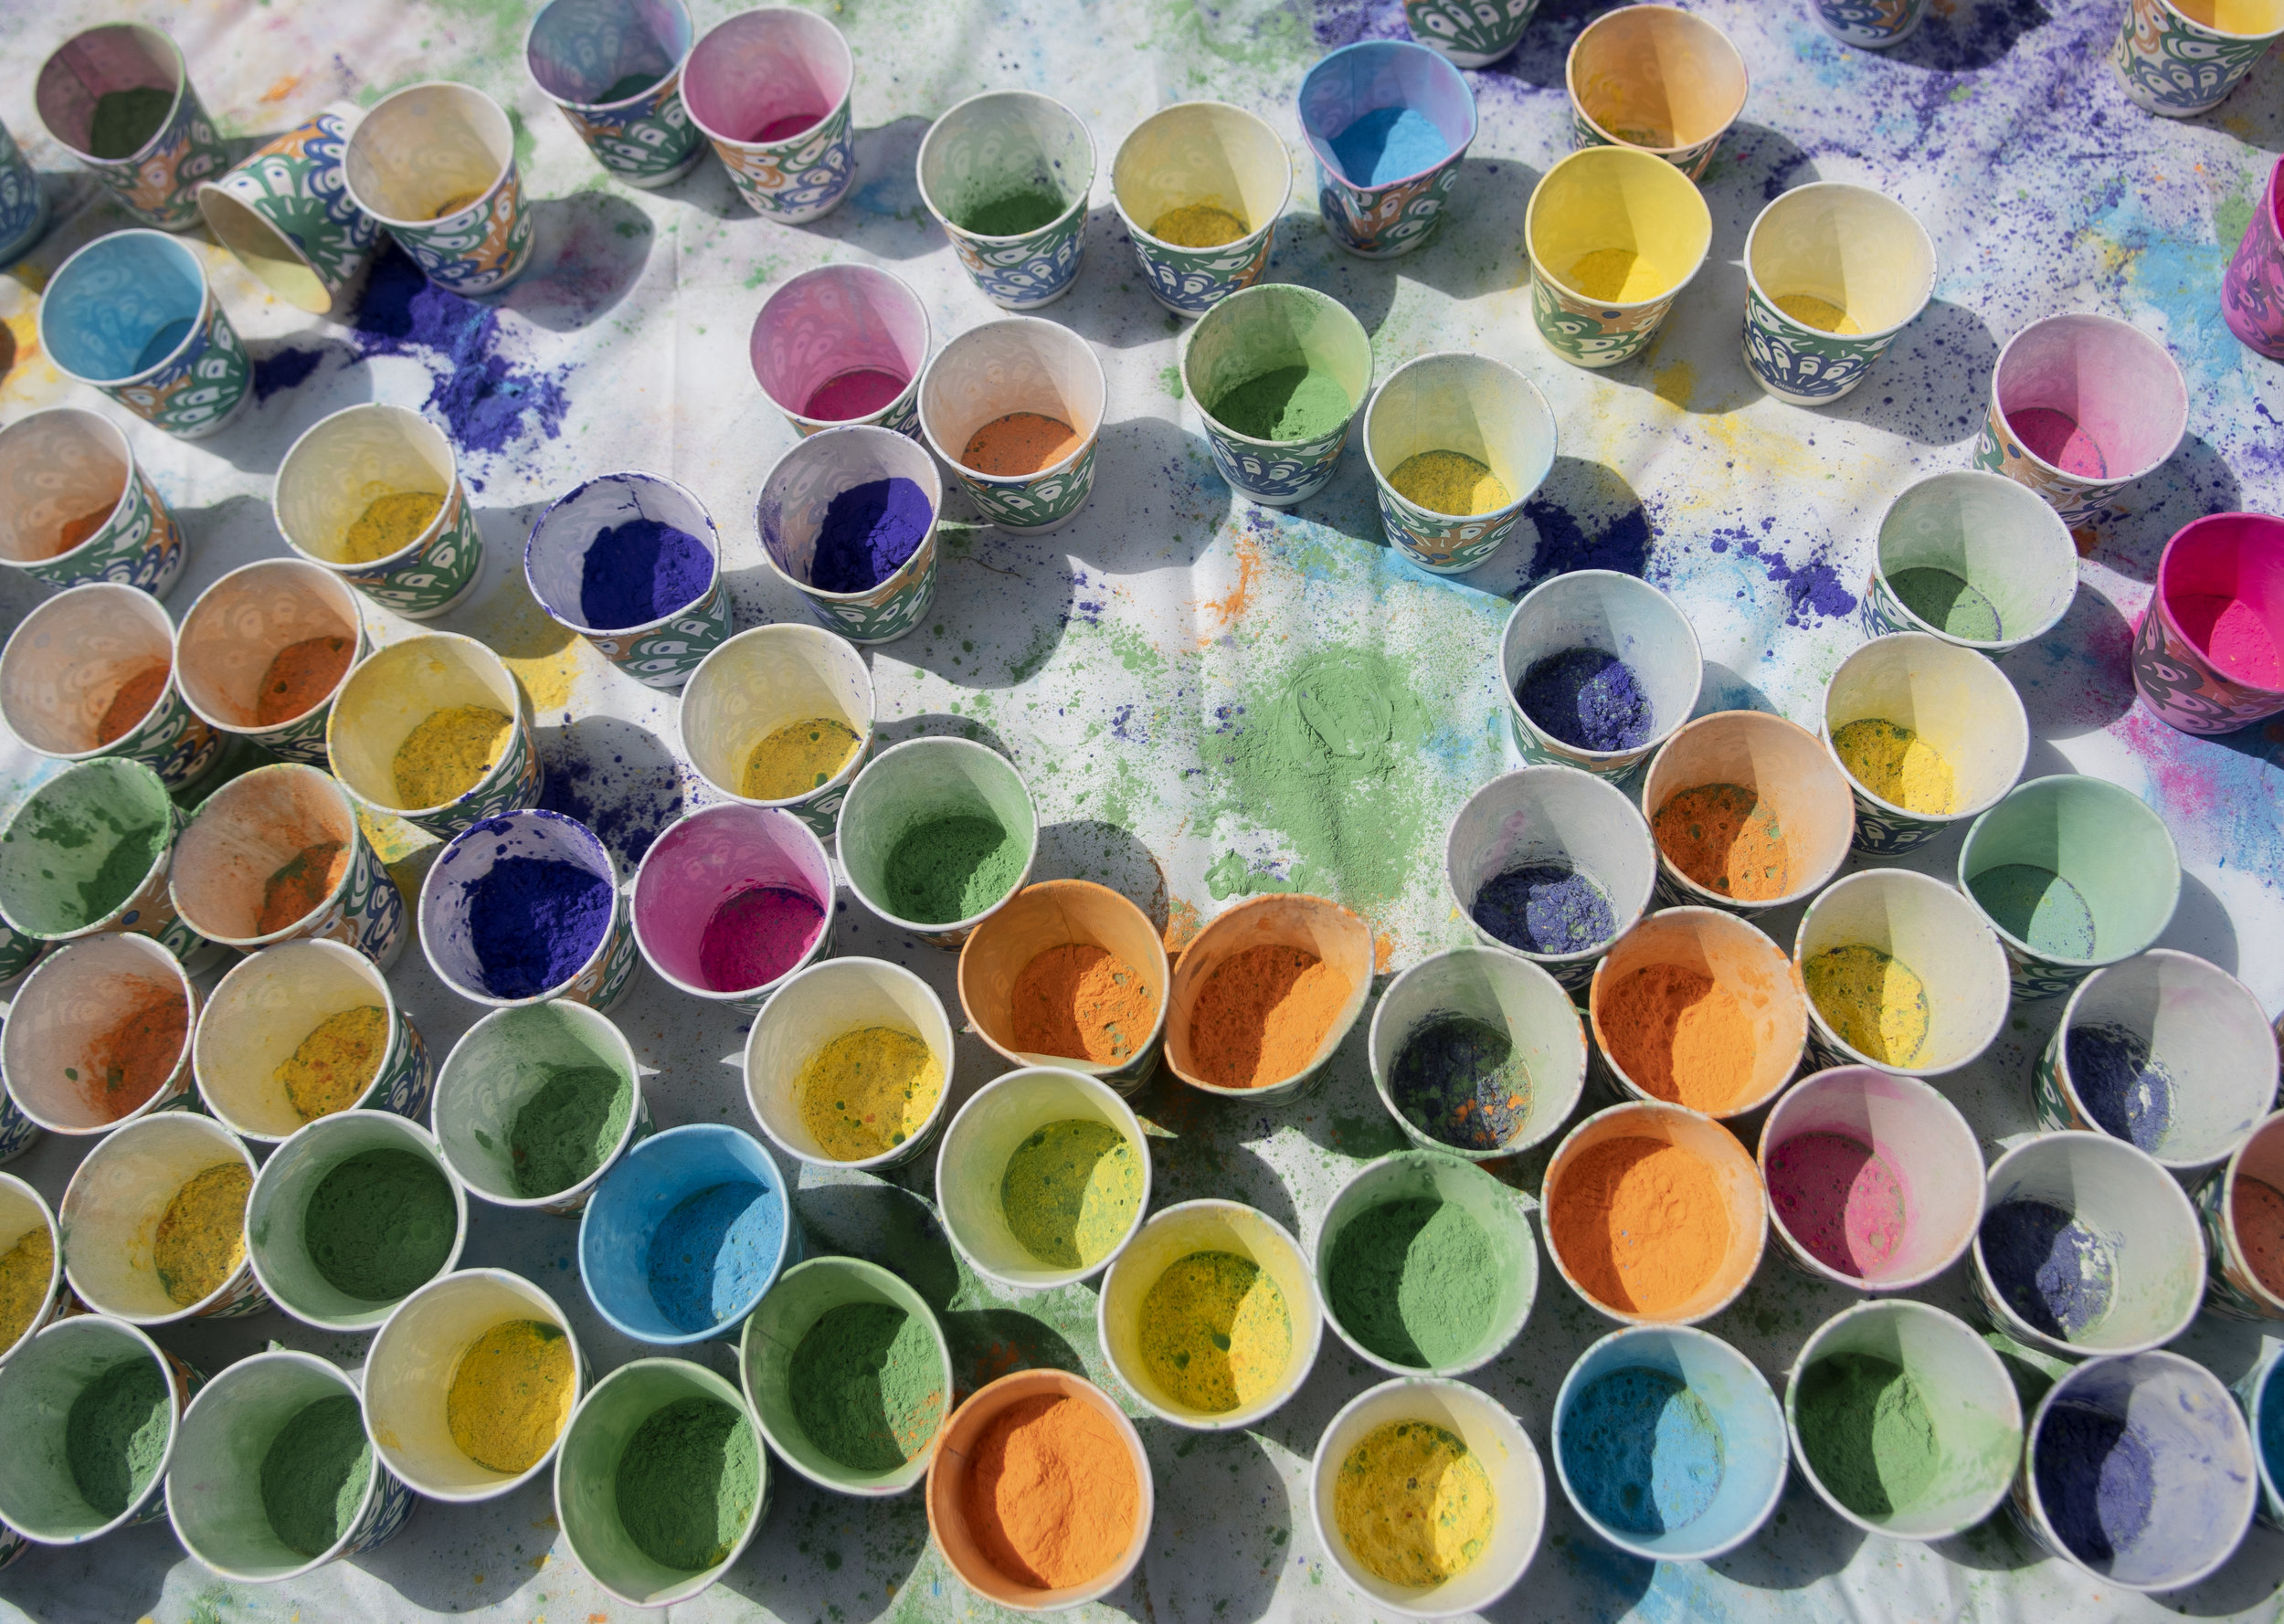 Cups of colored powder cover a table during the Hindu festival, Holi, hosted by the Indian Culture and Language Club and South Asian Student Association on Sunday, April 7, 2019 at the HUB-Robeson Center lawn. | Photo by: Noah Riffe